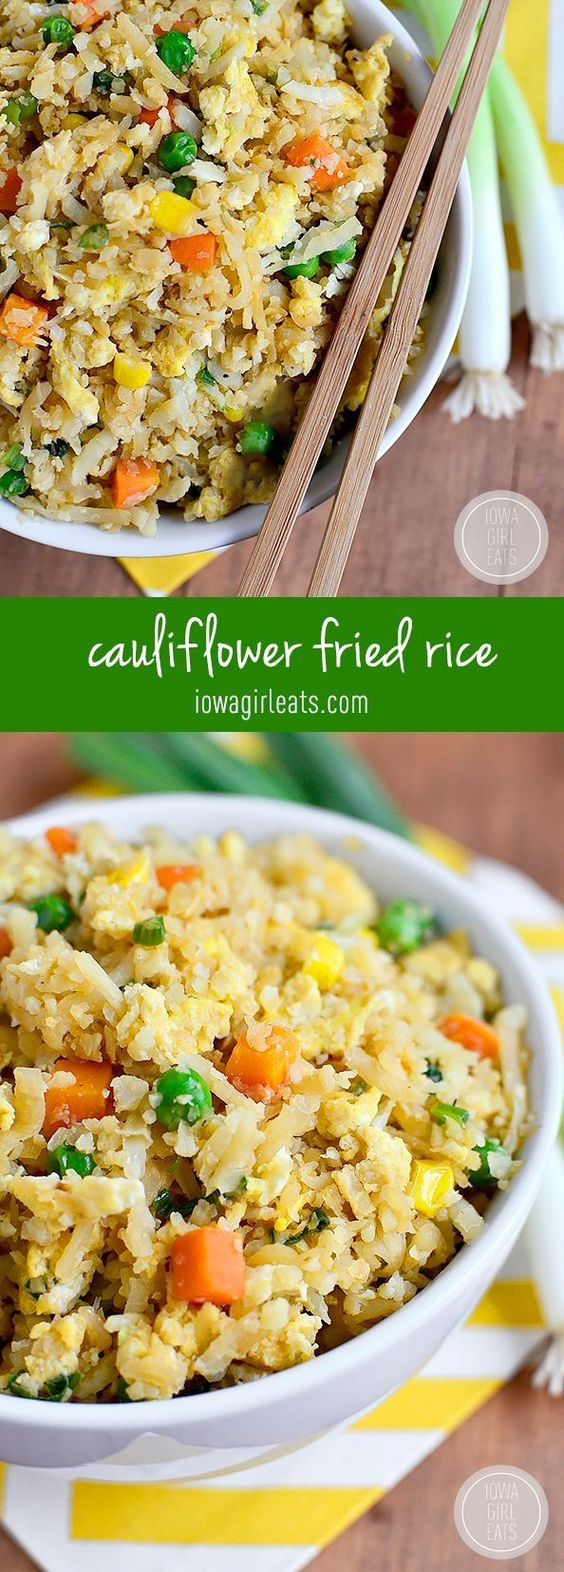 Cauliflower Fried Rice #cauliflower #friedrice #rice #vegan #veggies #veganrecipes